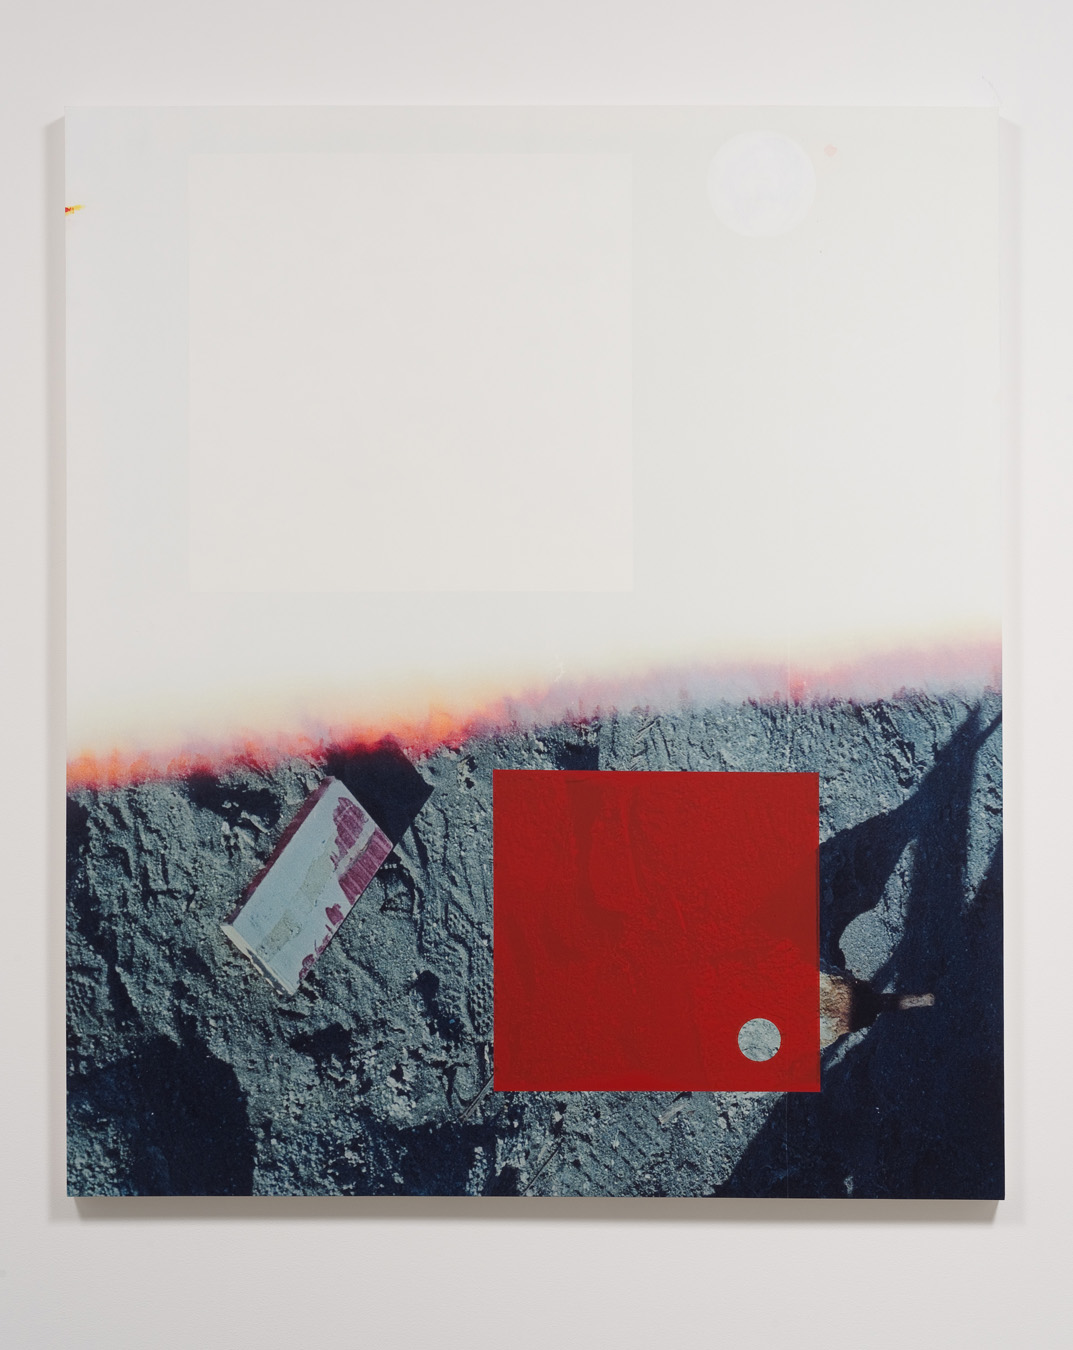 Salton Sea (half ground), 2012  Acrylic, screen ink and UV cured ink on canvas over  panel  77 x 66 inches  195.58 x 167.64 cm